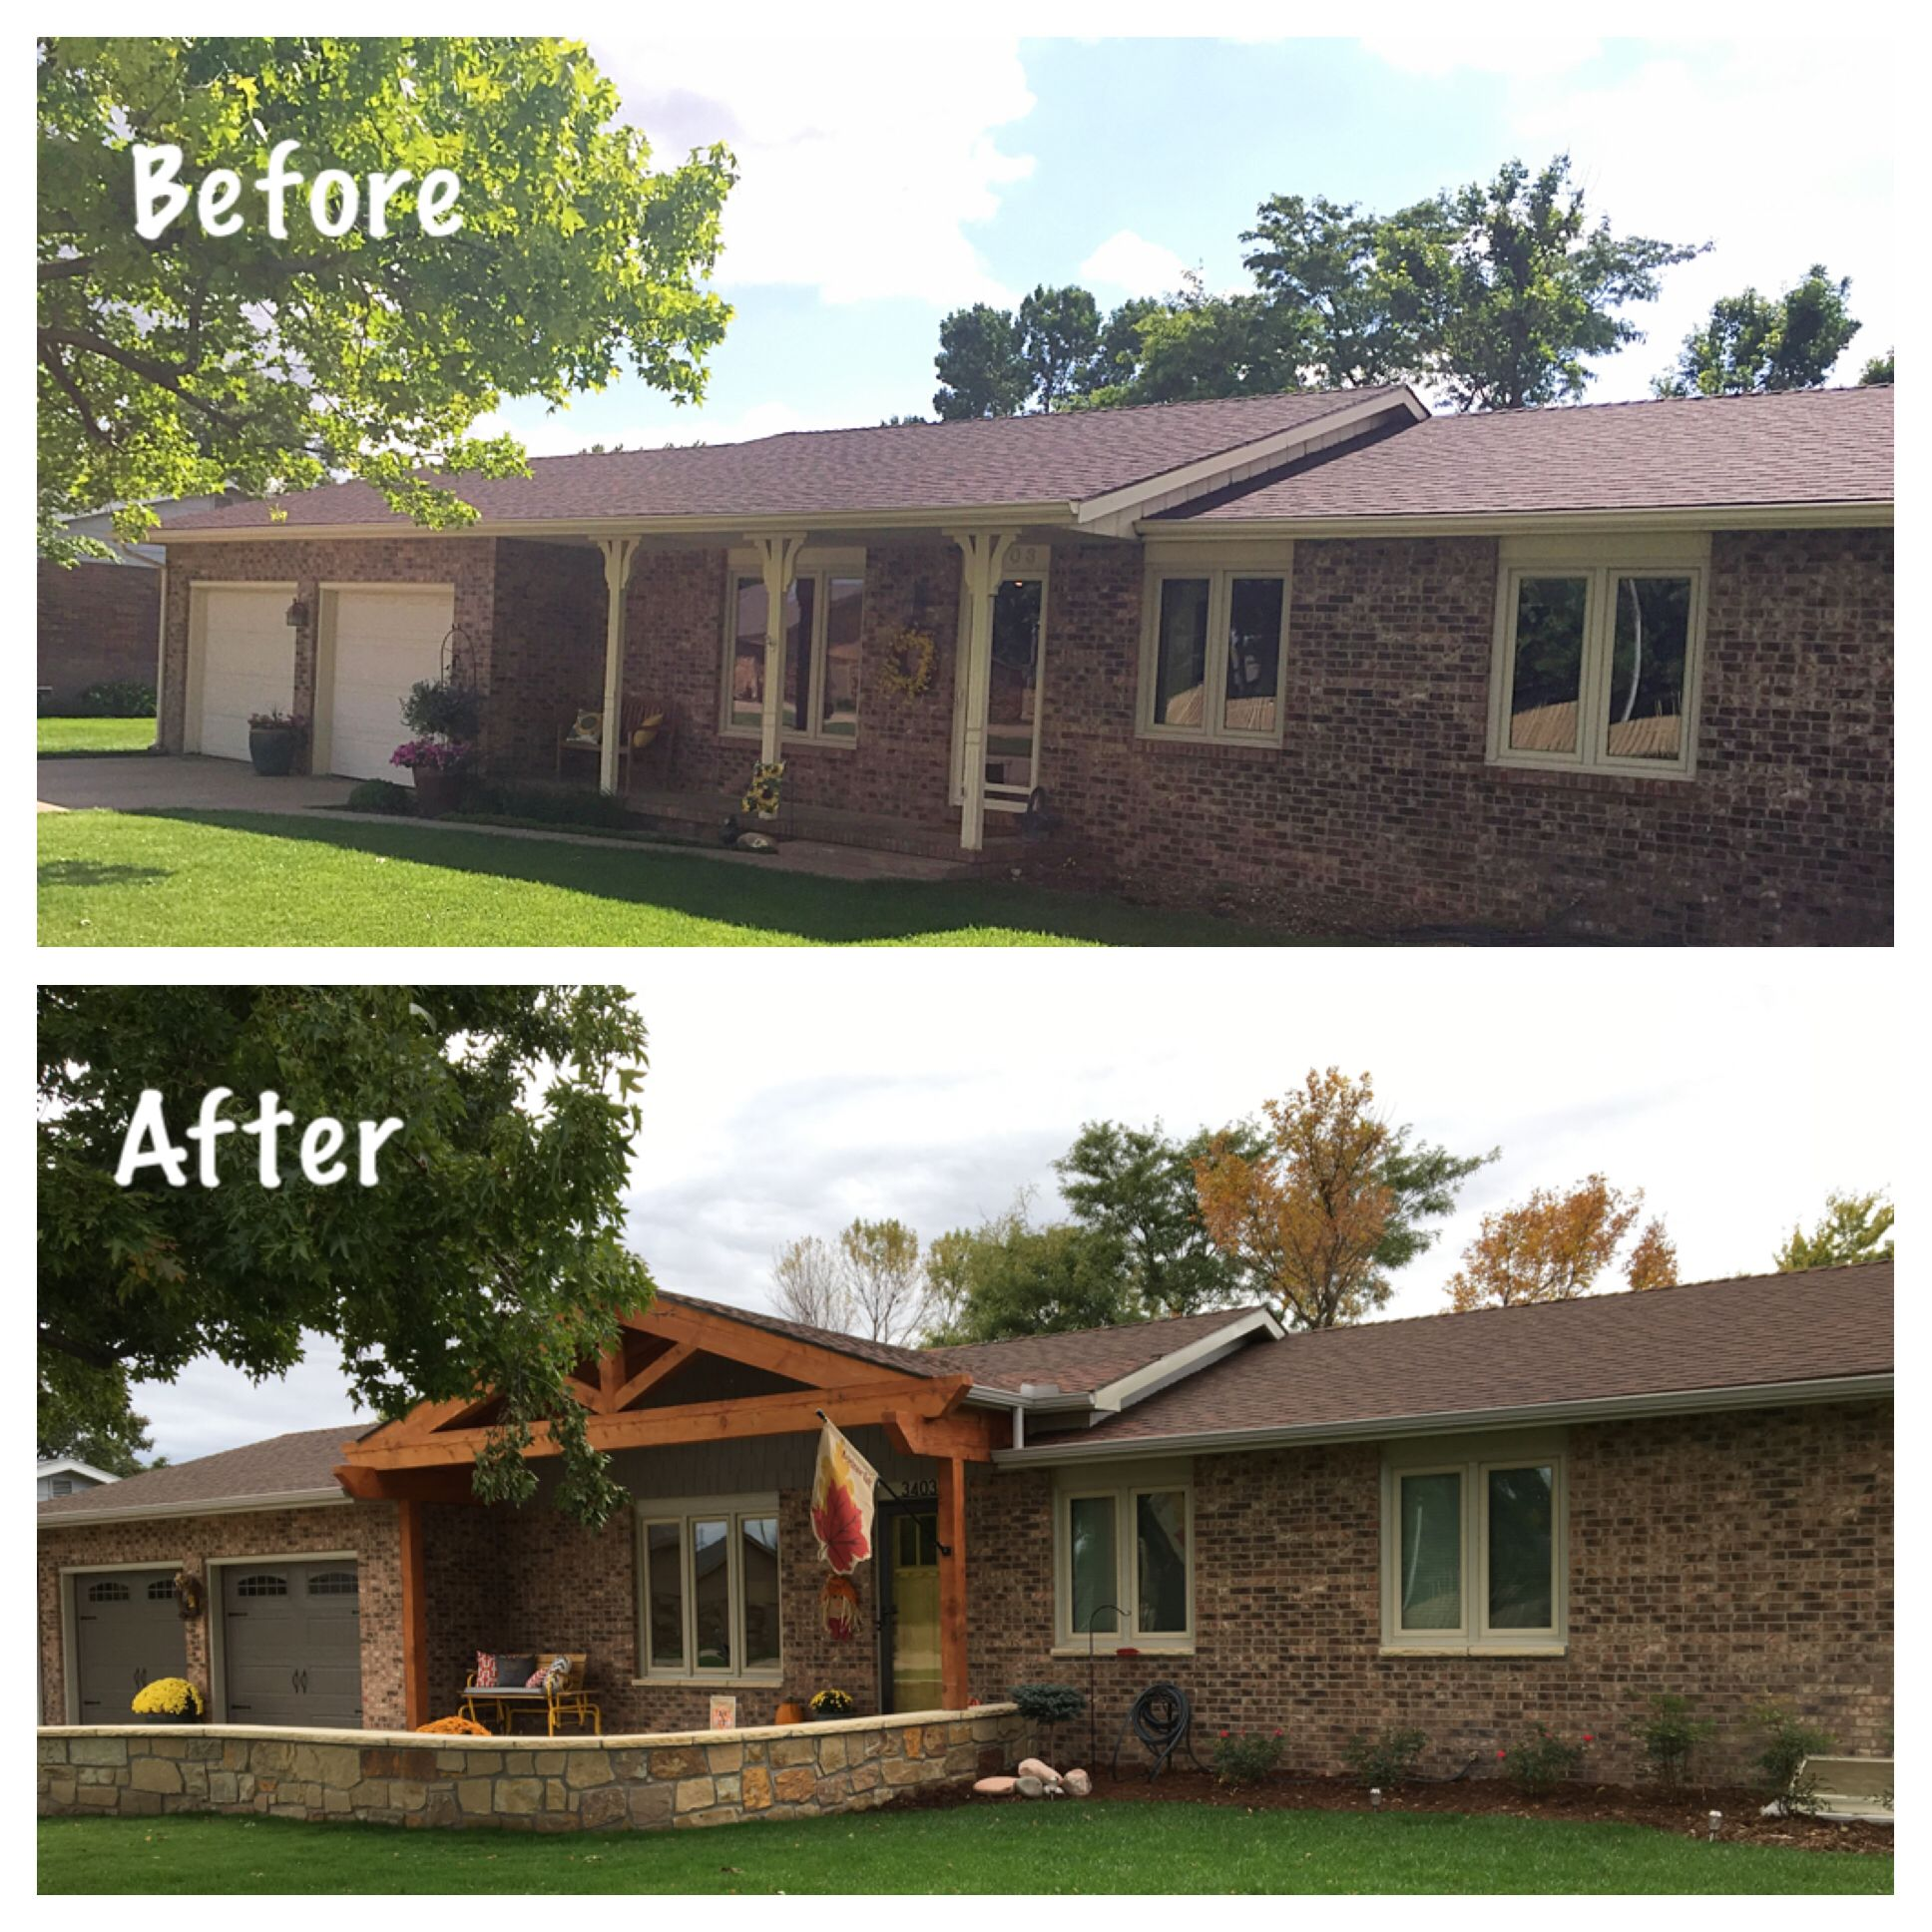 1970 S Before And After Ranch Style Exterior Update Ranch House Remodel Ranch House Exterior Brick Exterior House